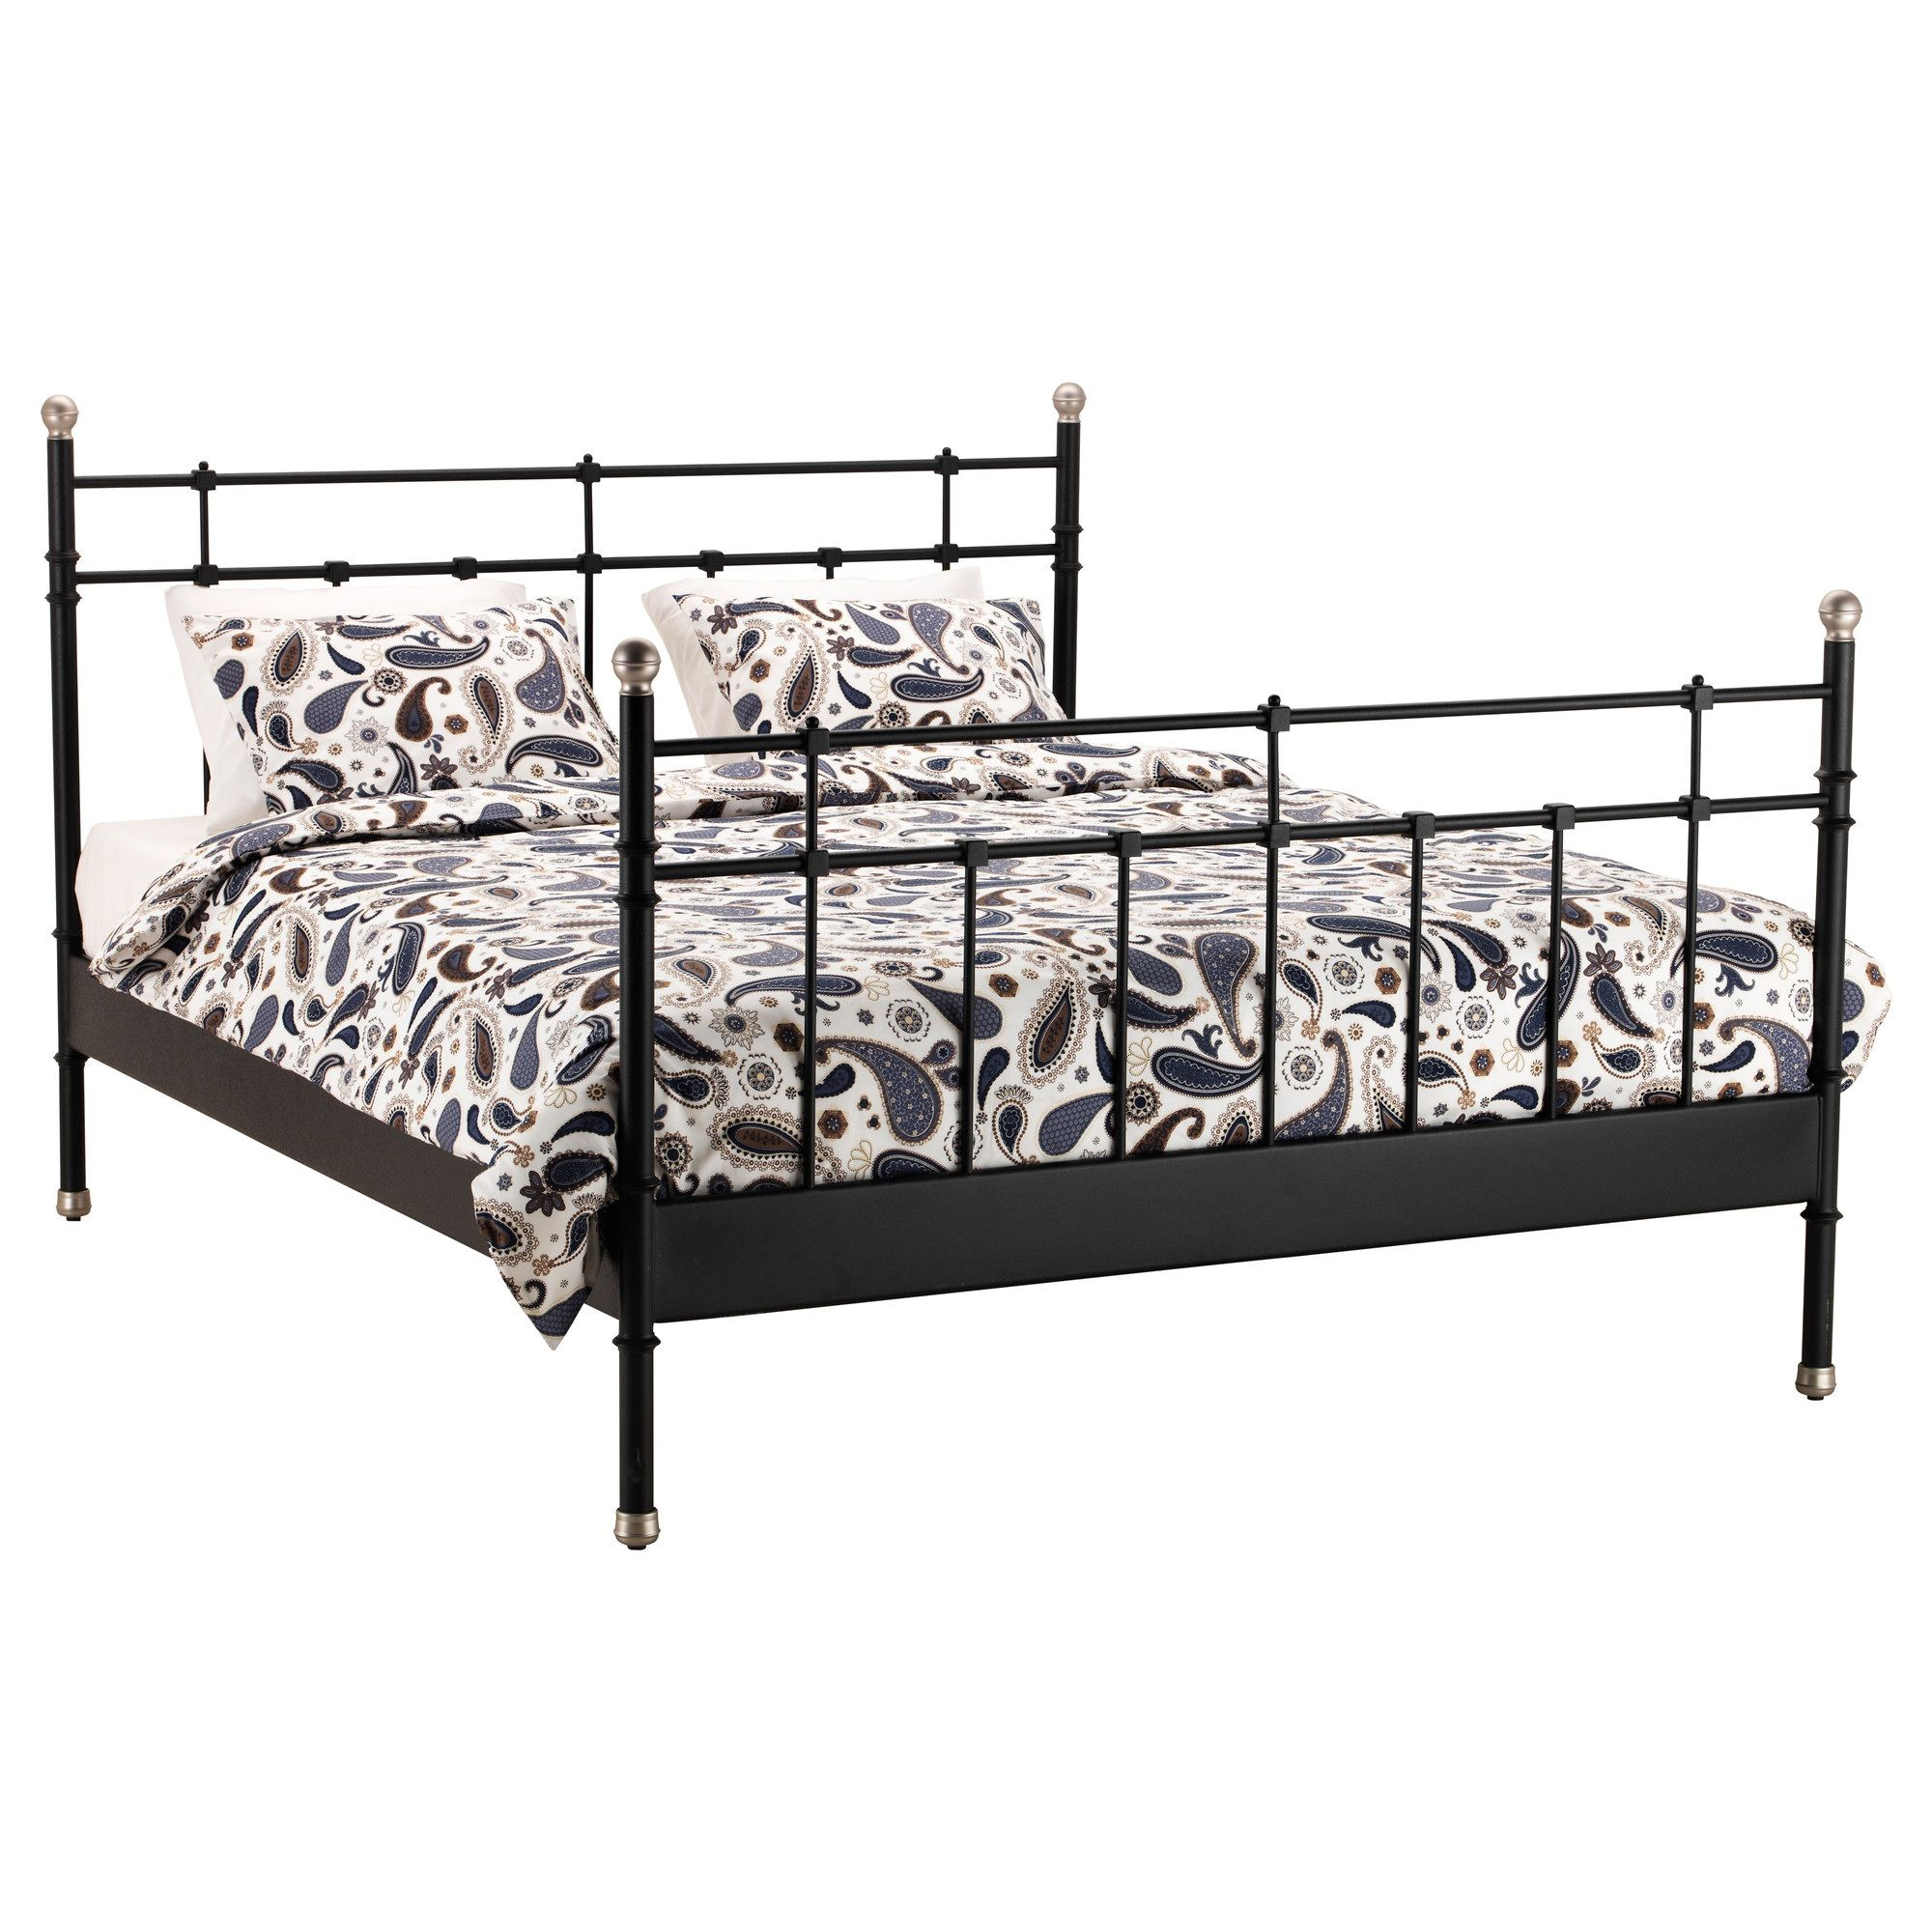 Ikea Iron Bed Surprising Ikea Metal Bed Frame New Apartment Ikea Metal Bed